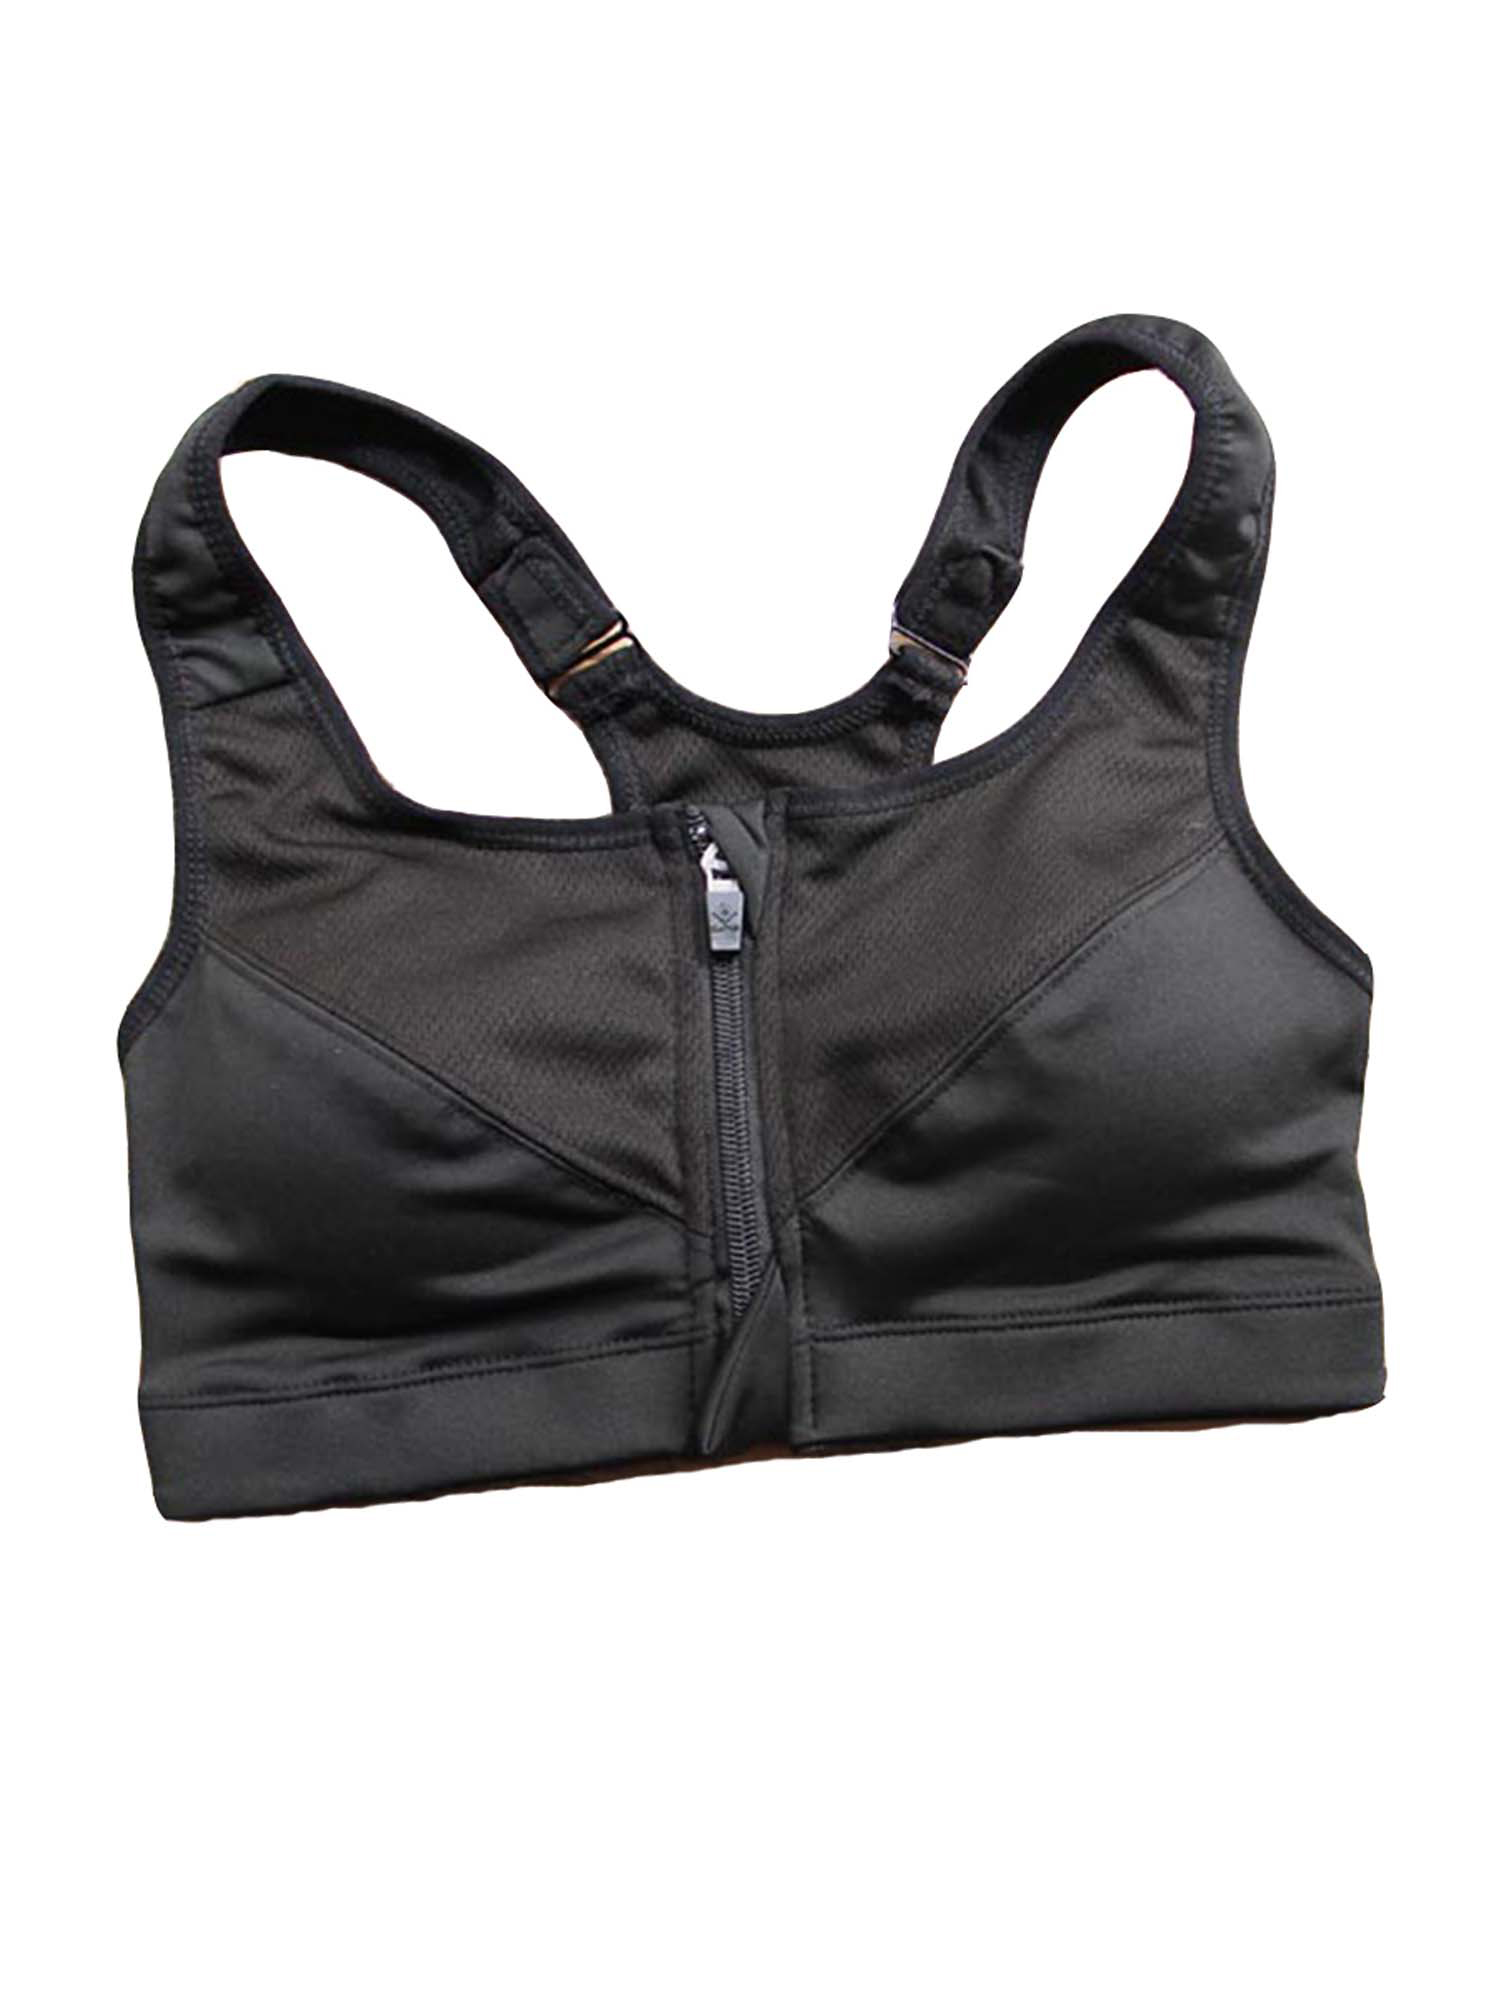 Womens Plus Size Athletic Stretch Quick Dry Zip Up Adjustable Strap Sports Bra Active Top